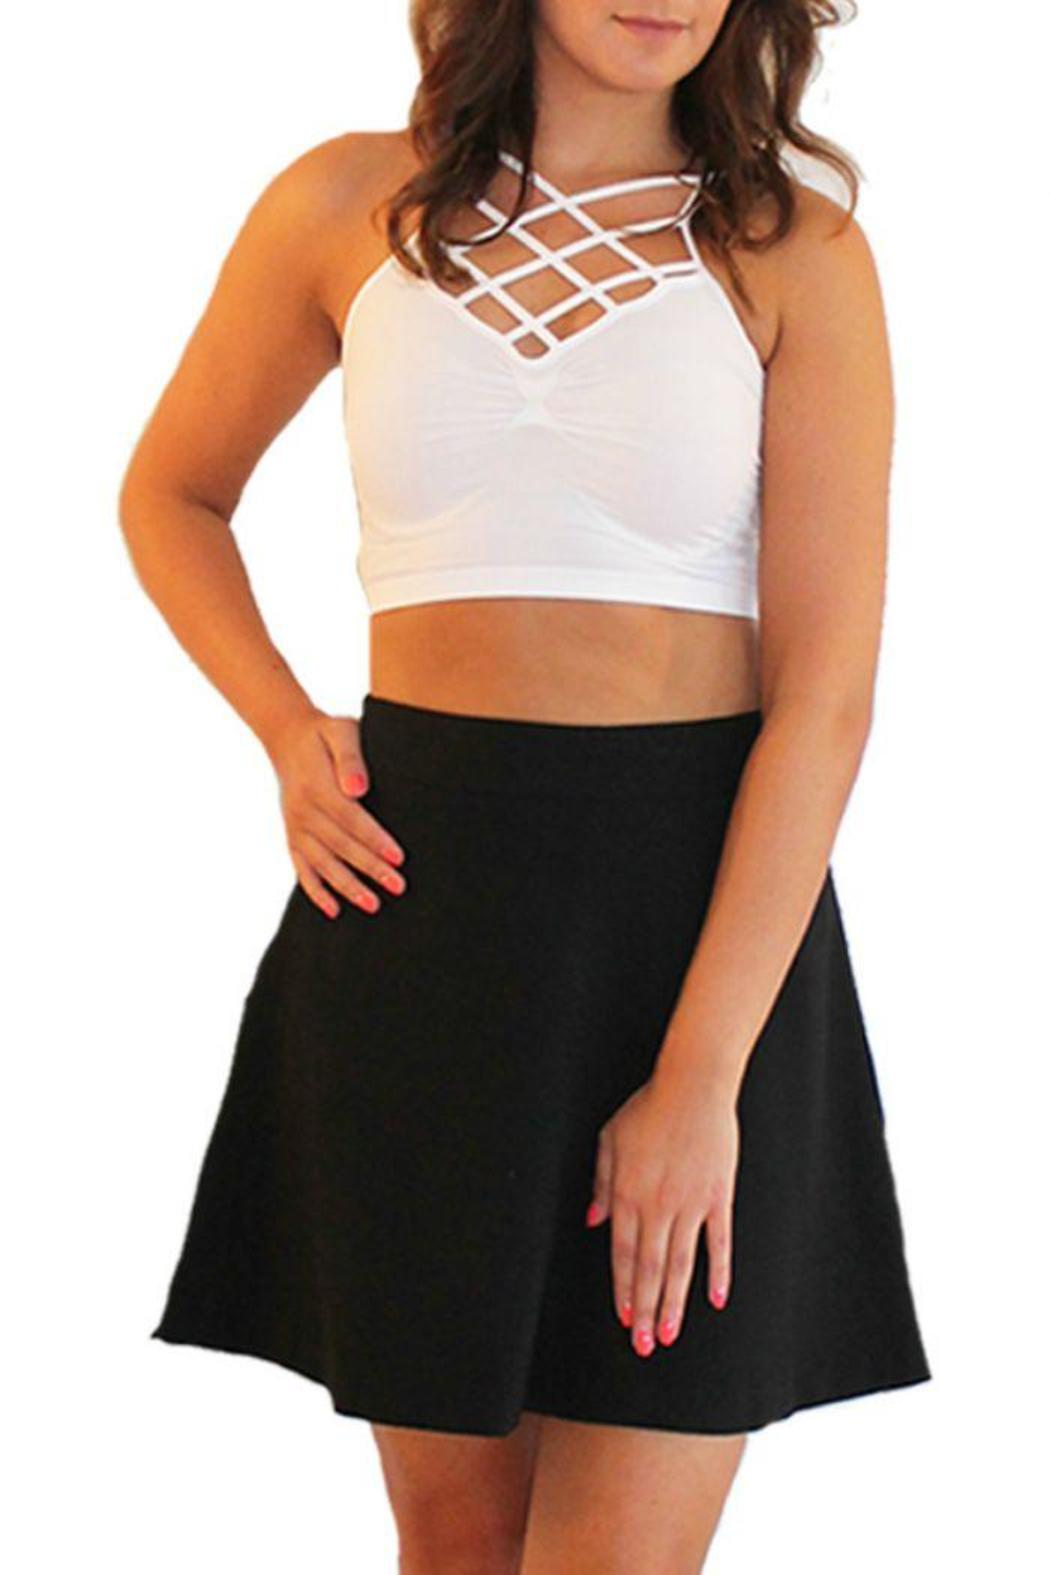 a1bf83c592d9e4 Suzette Spider Cage Crop from Palm Beach by Frankie James Boutique ...